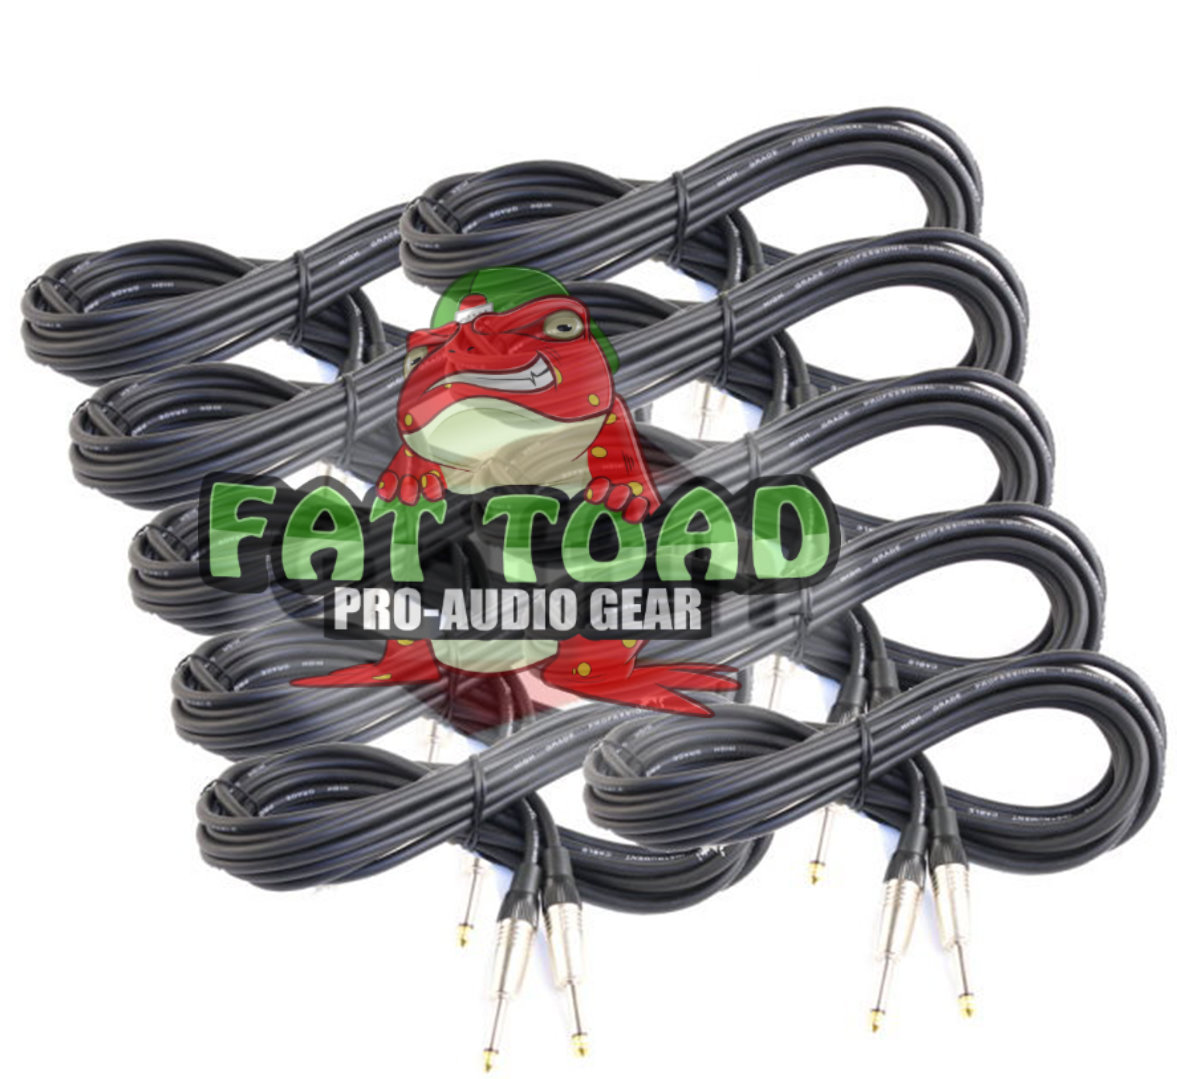 Guitar Cables (10 Pack) Instrument Cord by Fat Toad 20 Gauge Patch Conductor for Electric... by Fat Toad